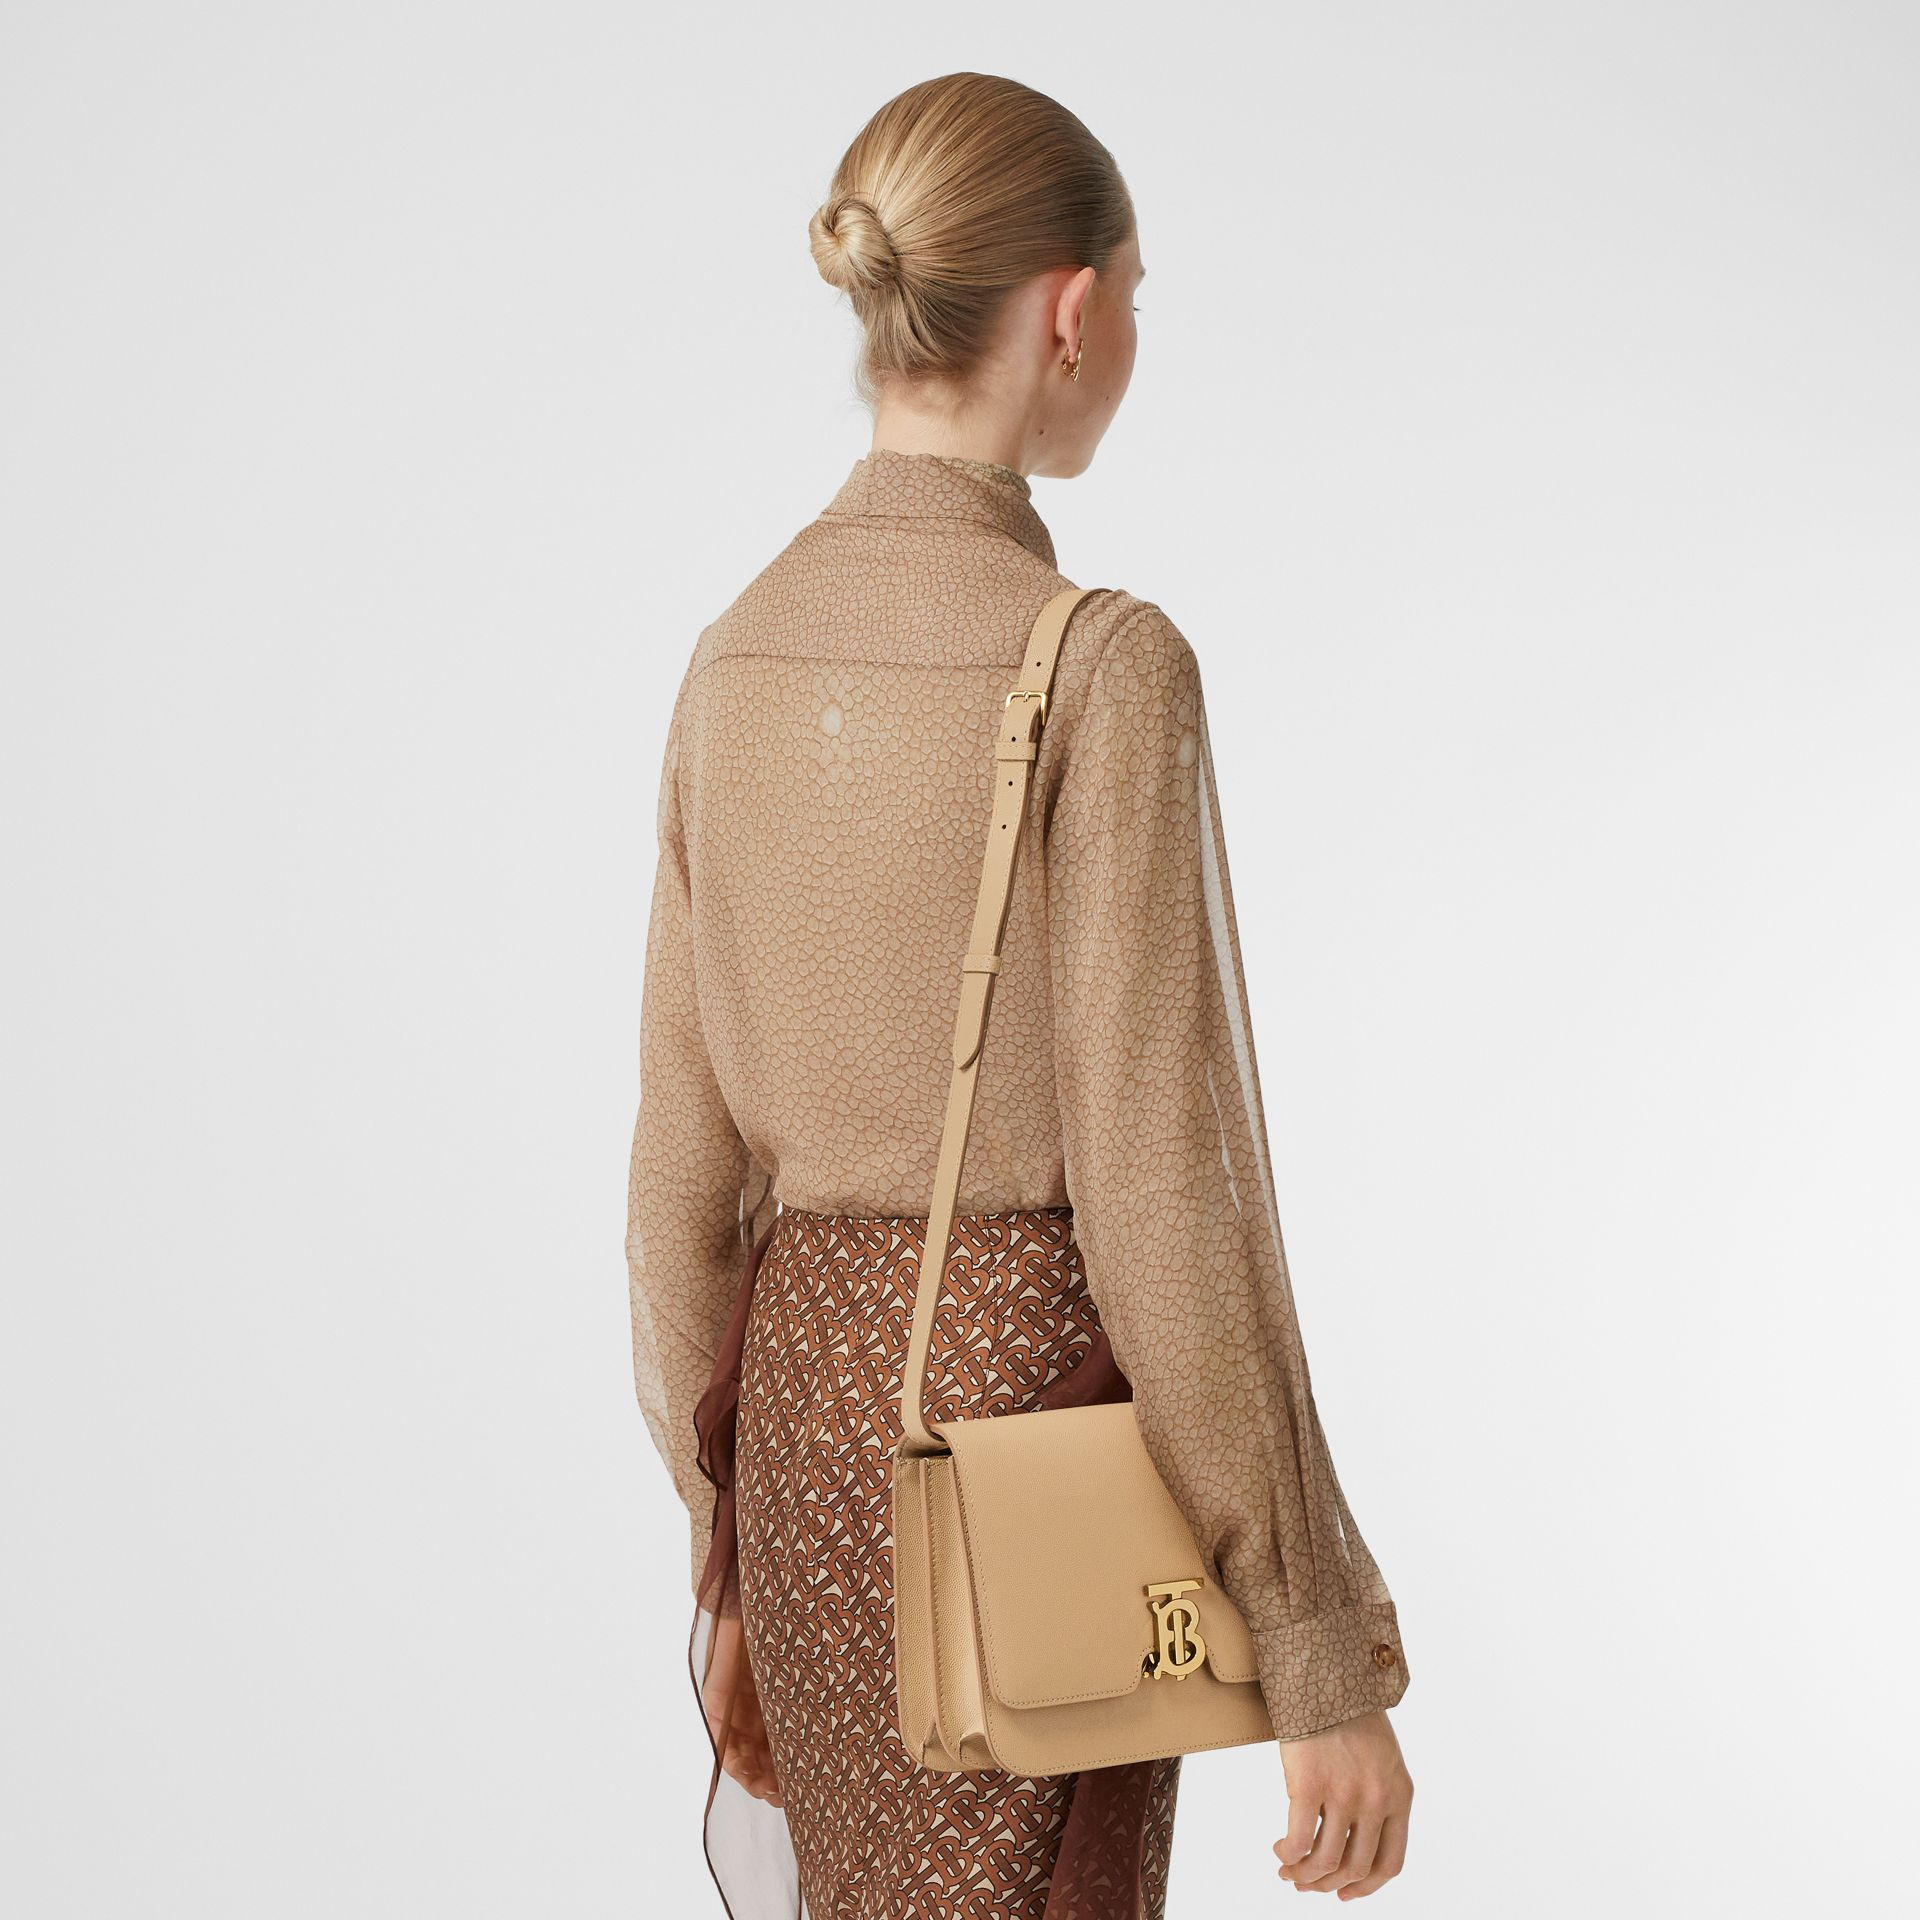 Medium Grainy Leather TB Bag in Archive Beige - Women | Burberry - gallery image 2